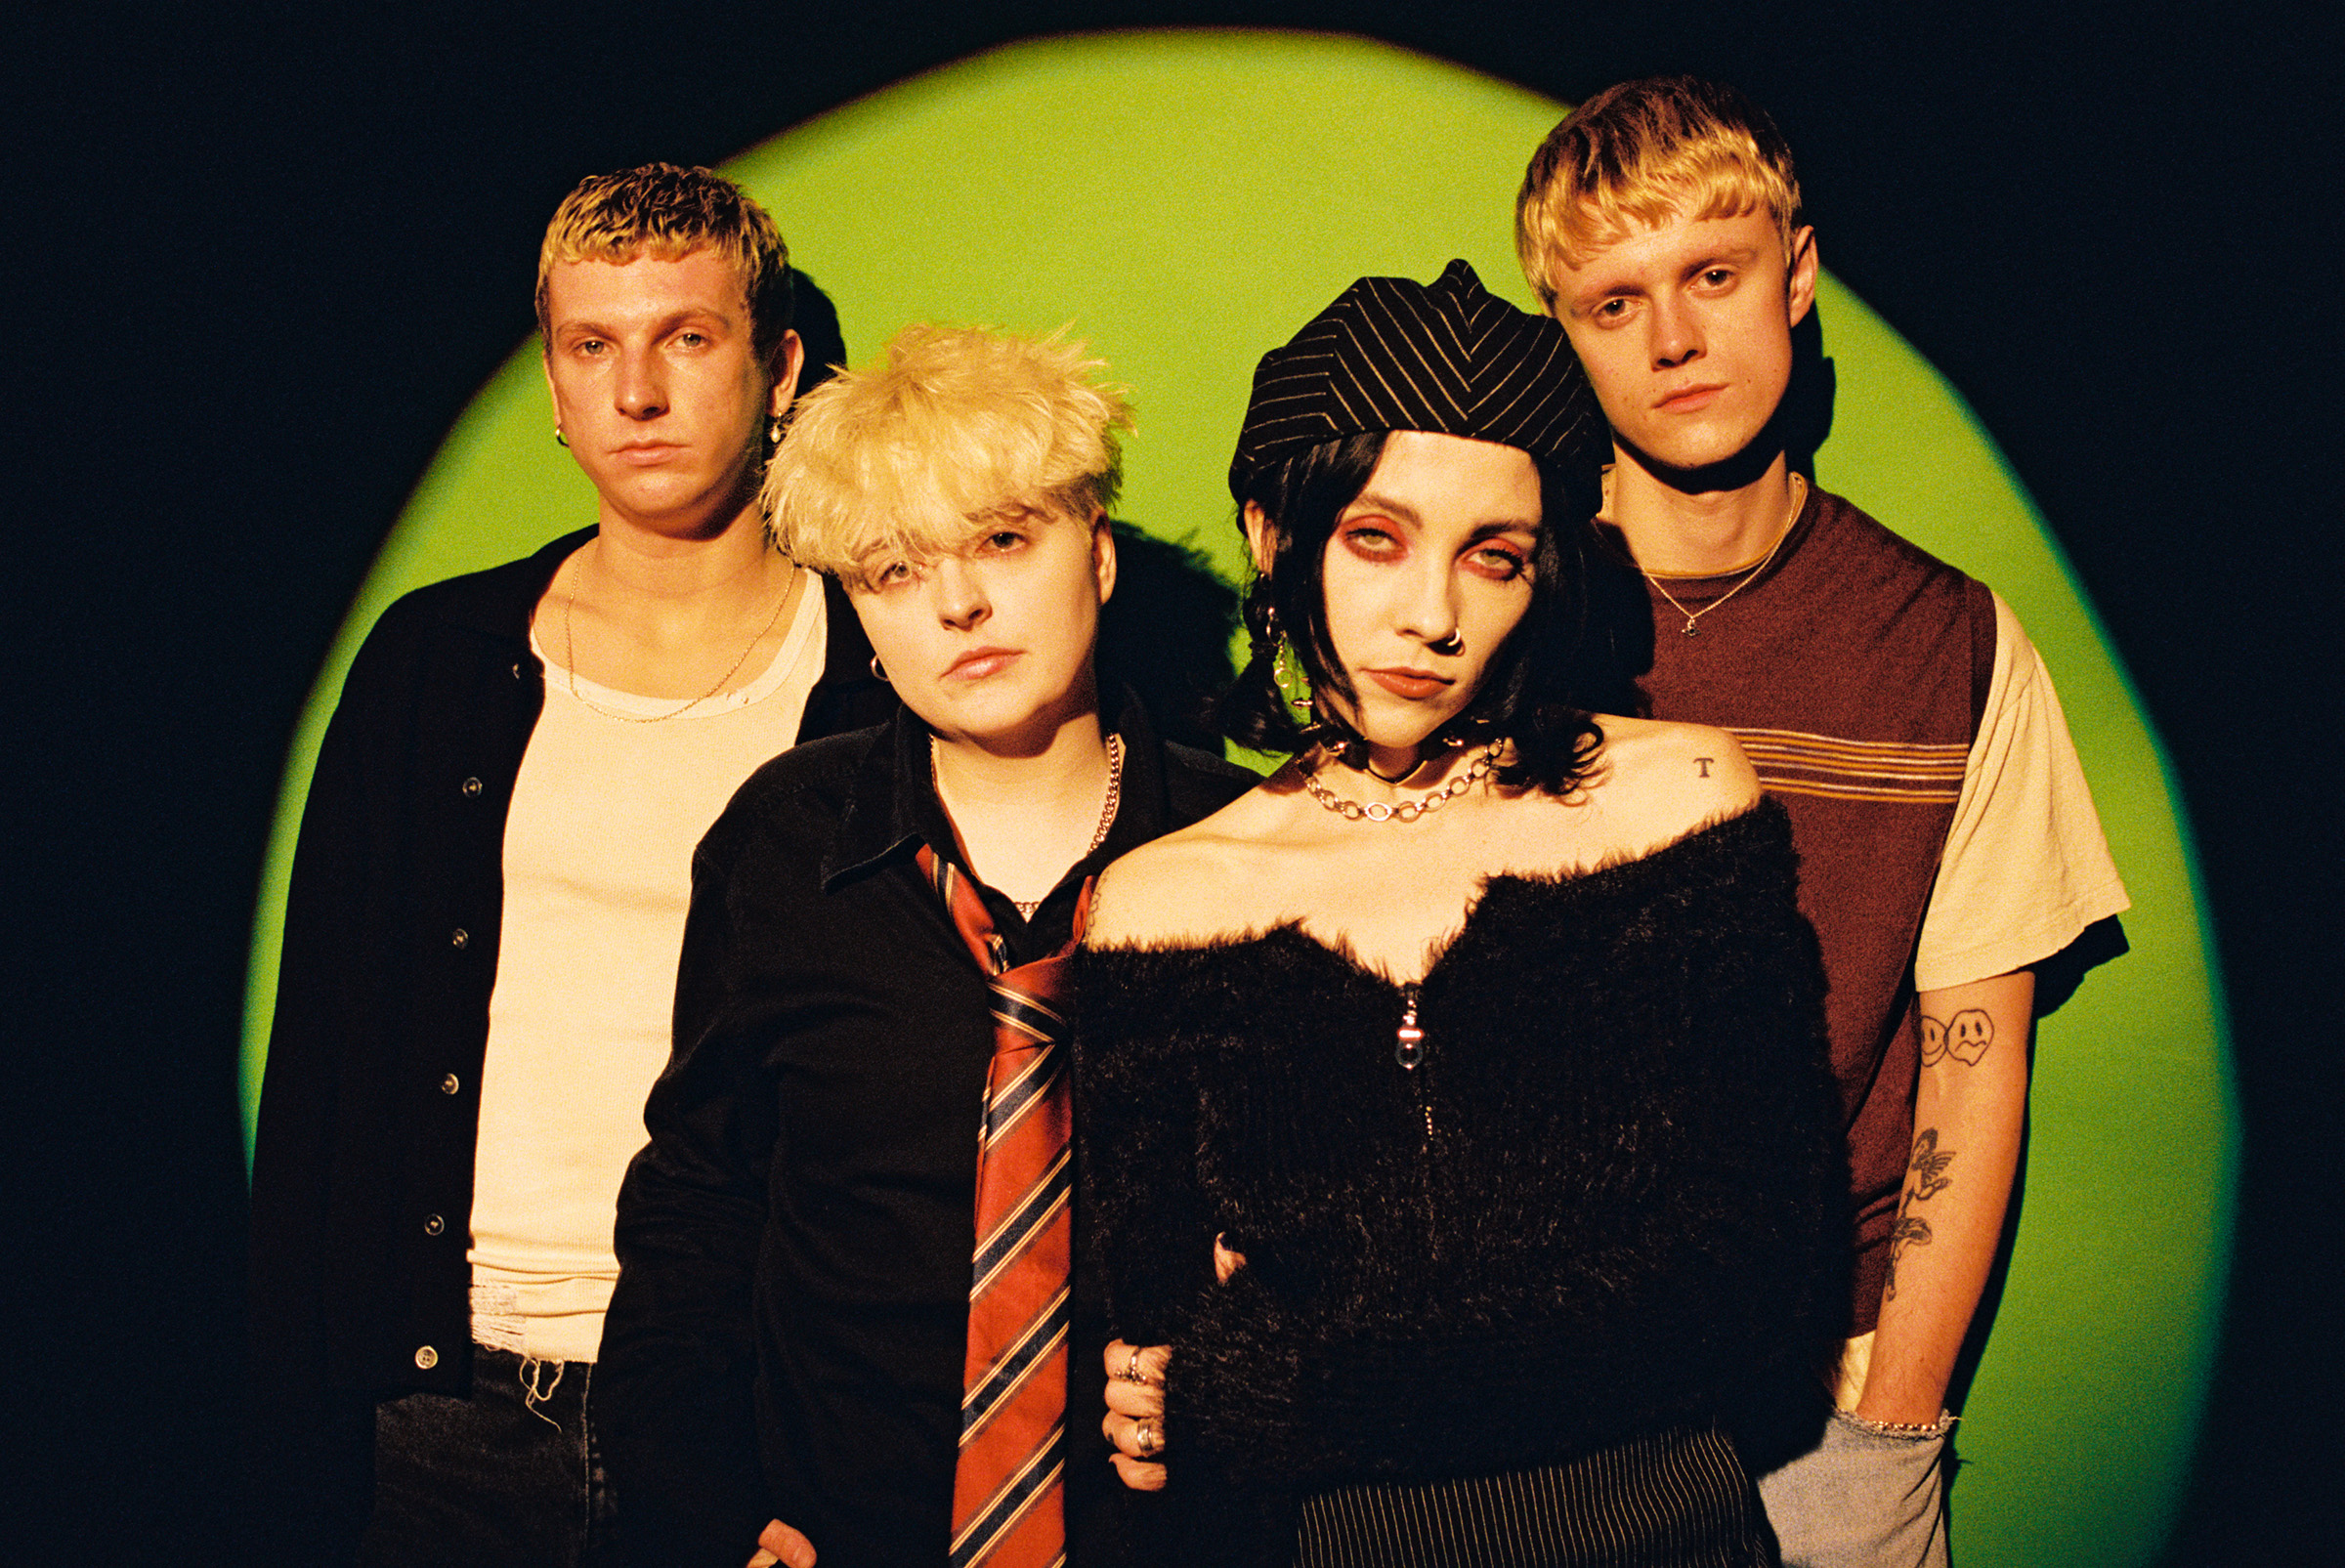 PALE WAVES announce headline Belfast show at Limelight 2 on Saturday, February 19th 2022 2